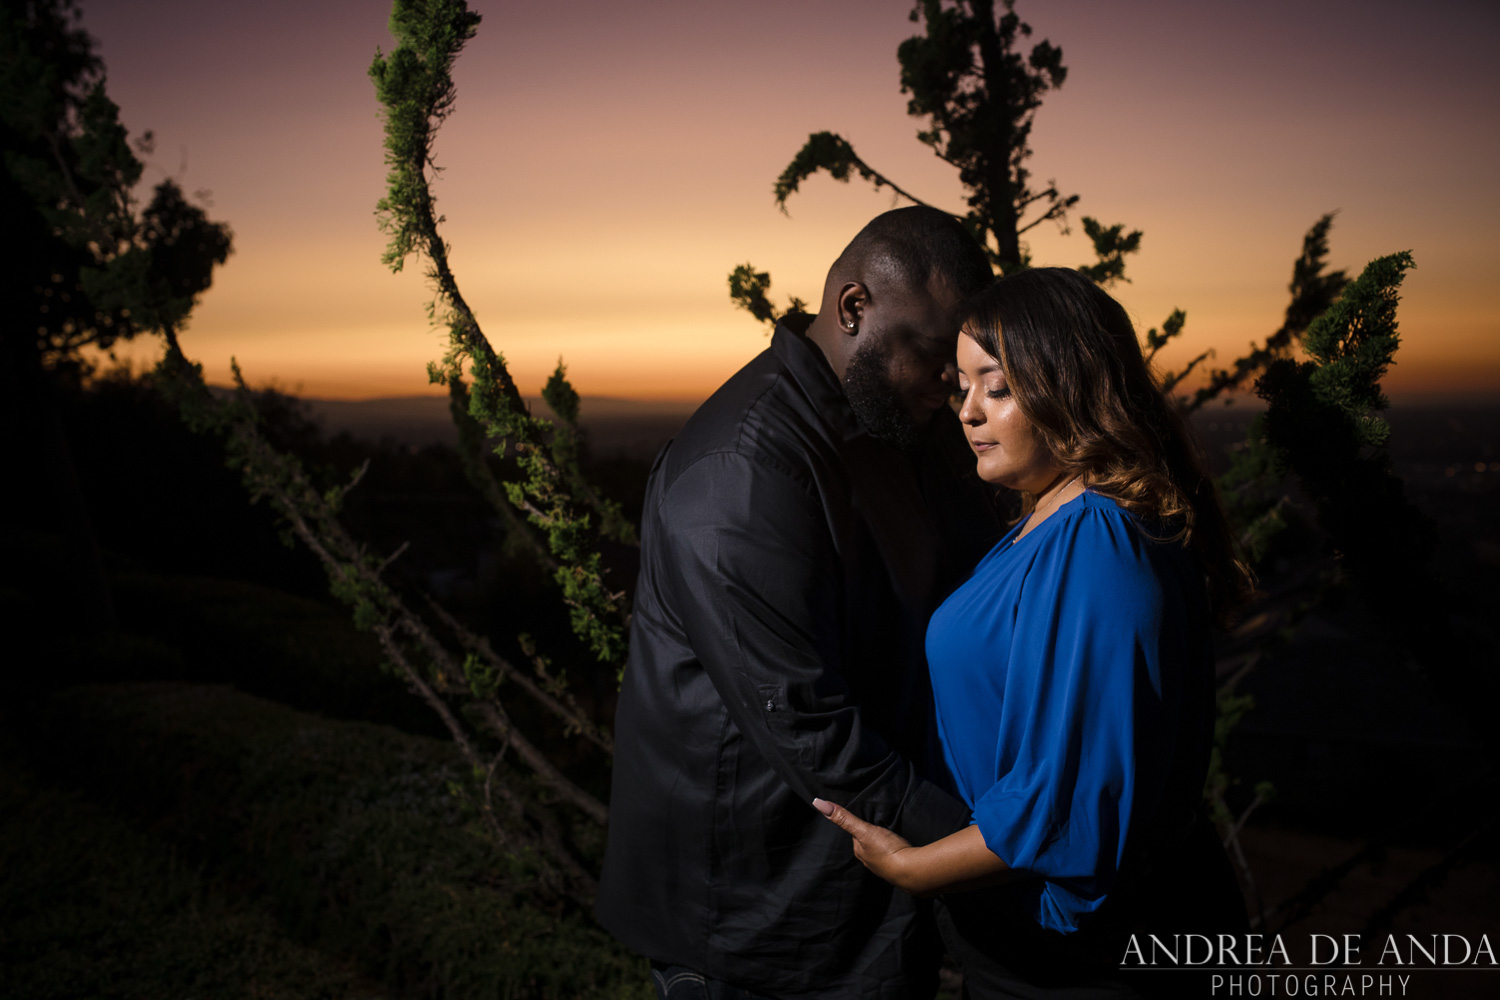 Evergreen-California-Engagement-session-Andrea-de-Anda-photography_-18.jpg